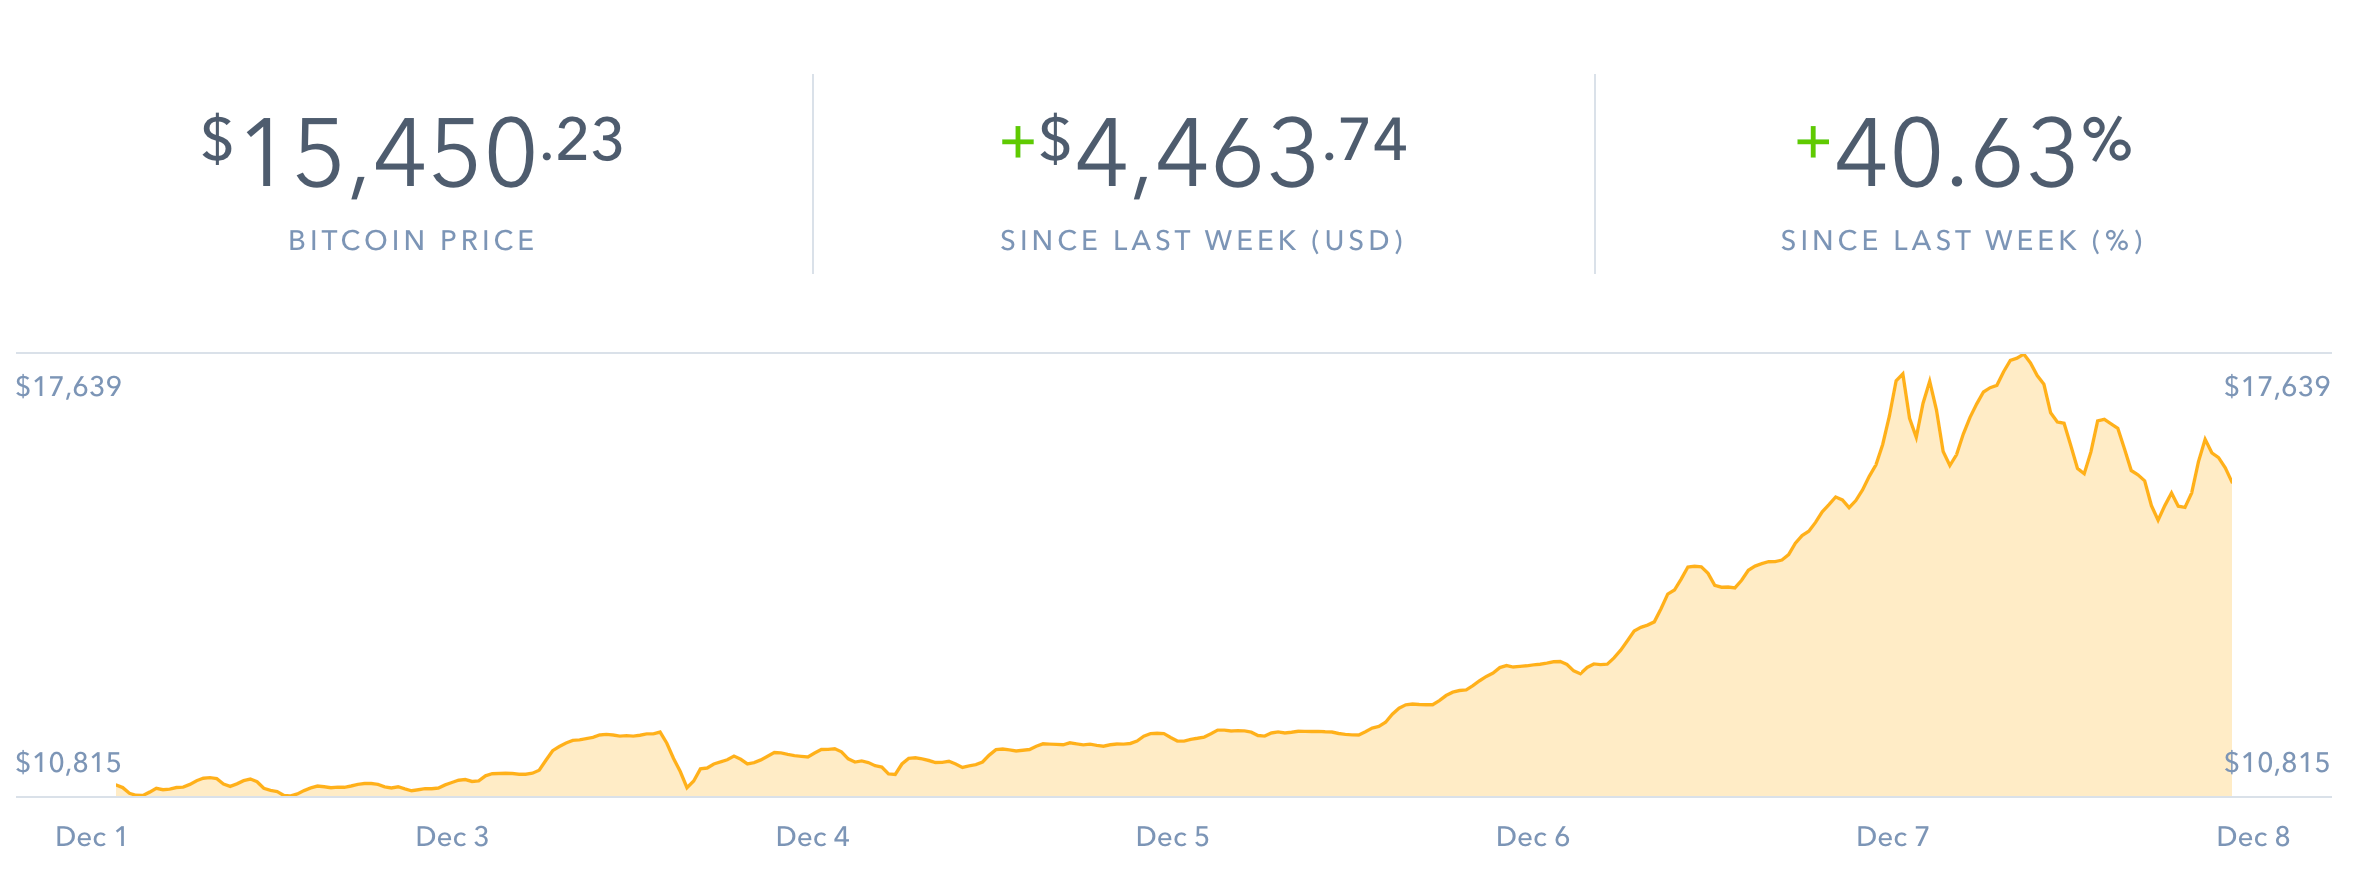 The price of Bitcoin increased by thousands of dollars in one week.